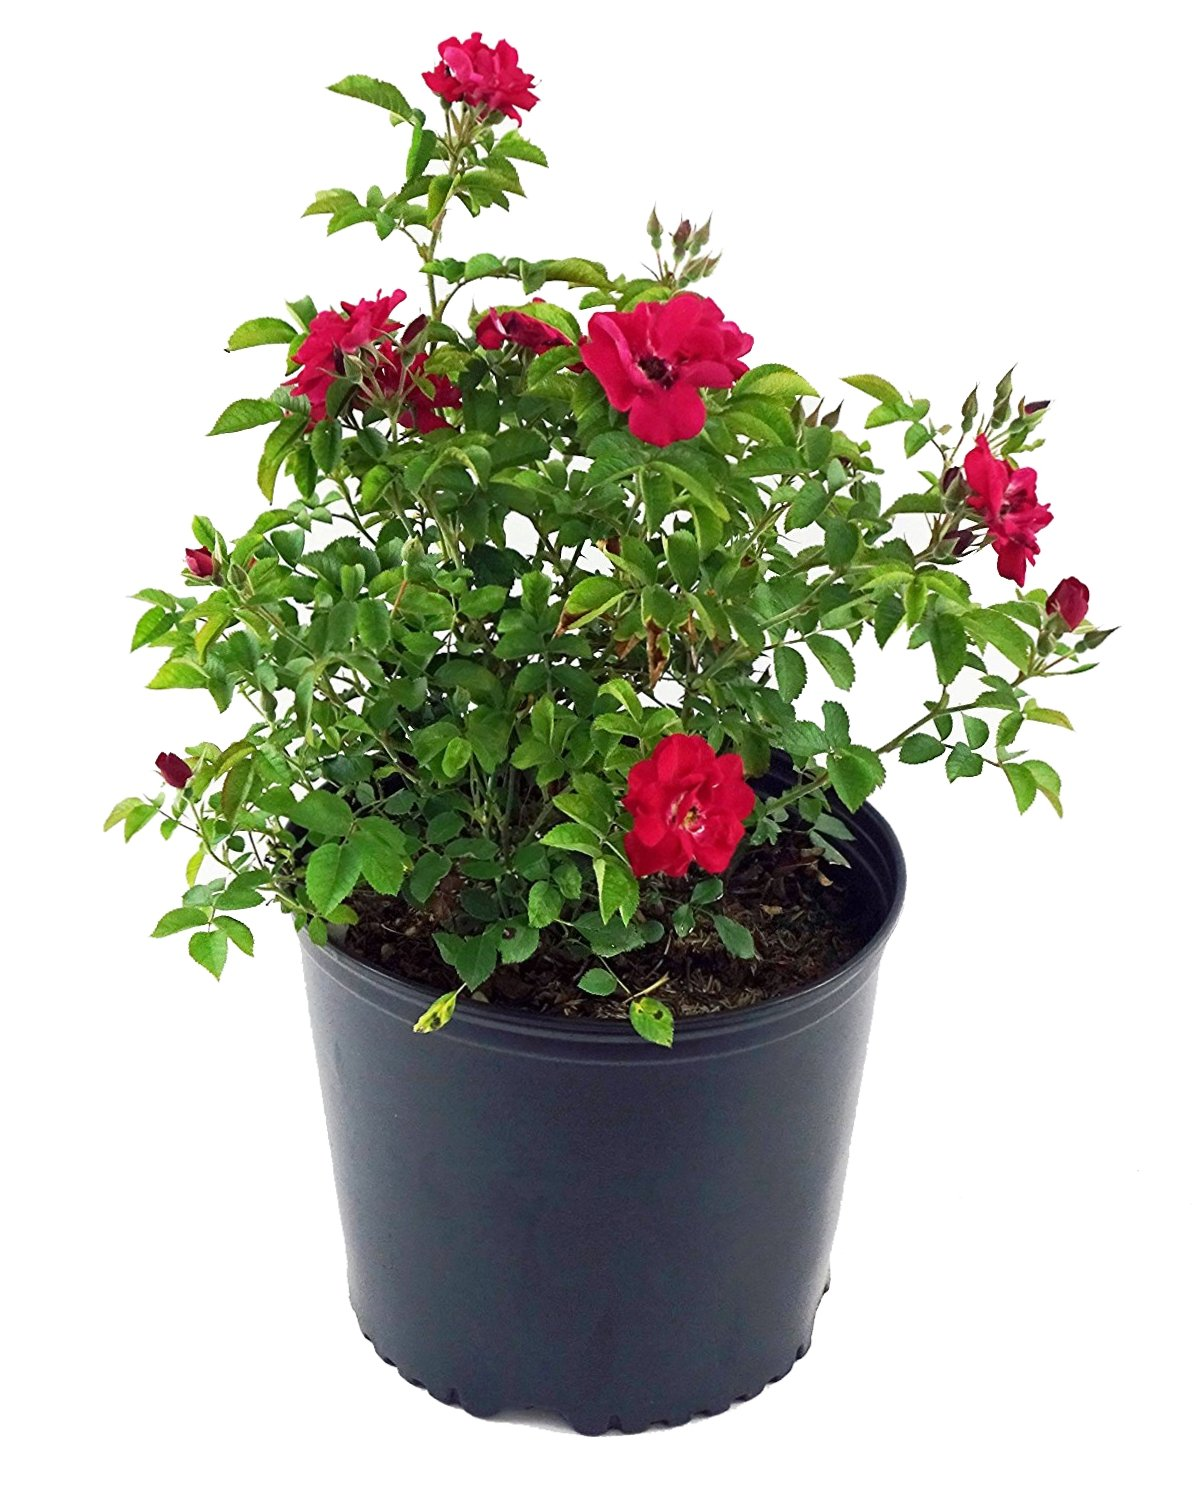 Rosa 'Blaze' (Climbing Rose) Rose, red Flowers, 3 - Size Container by Green Promise Farms